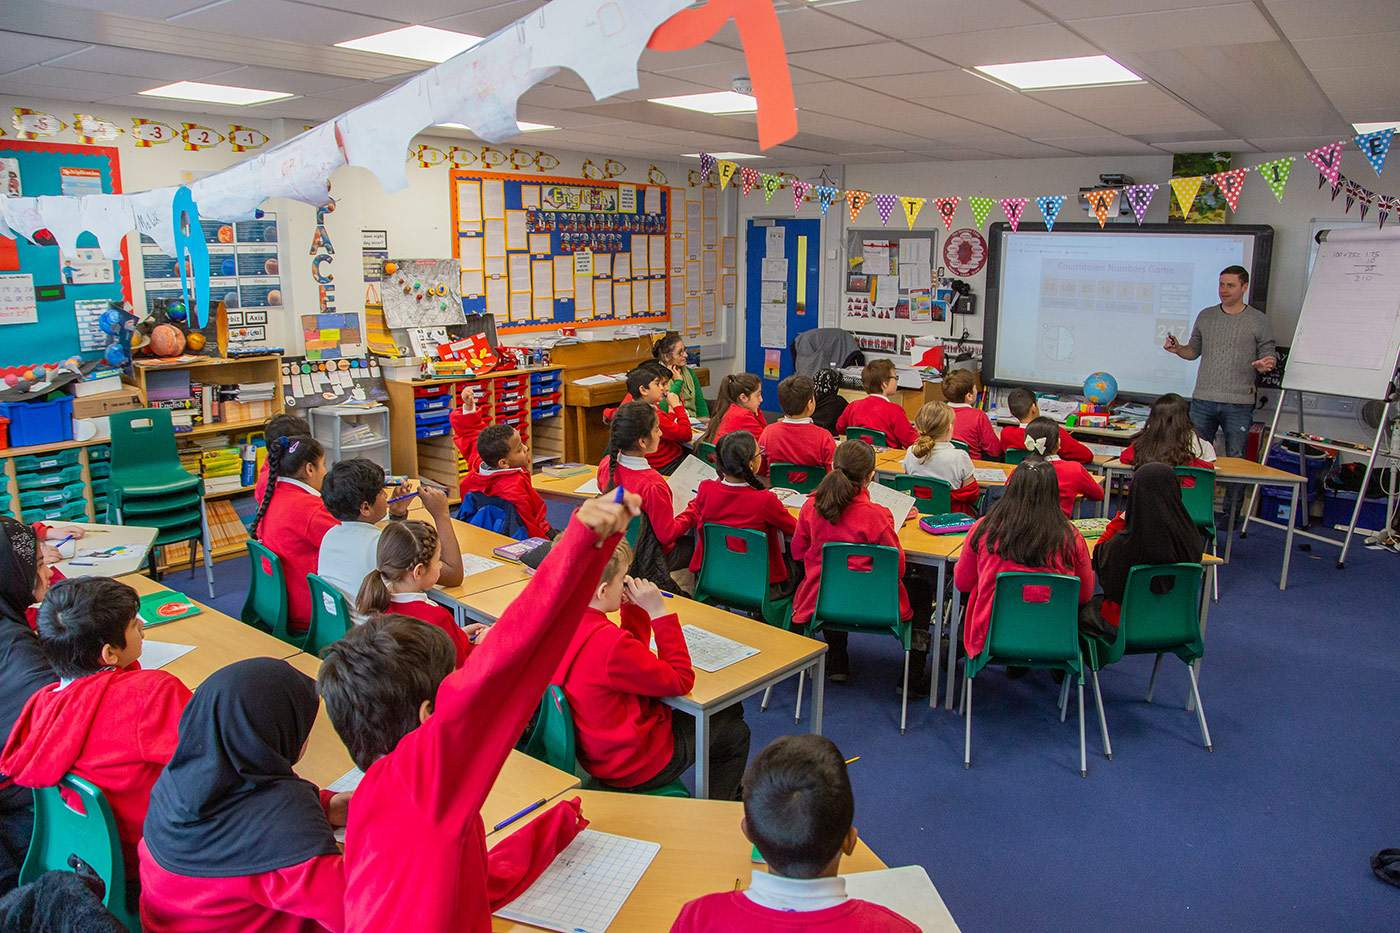 Gallery | Orchard Primary School Hounslow pertaining to Orchard School Calendar